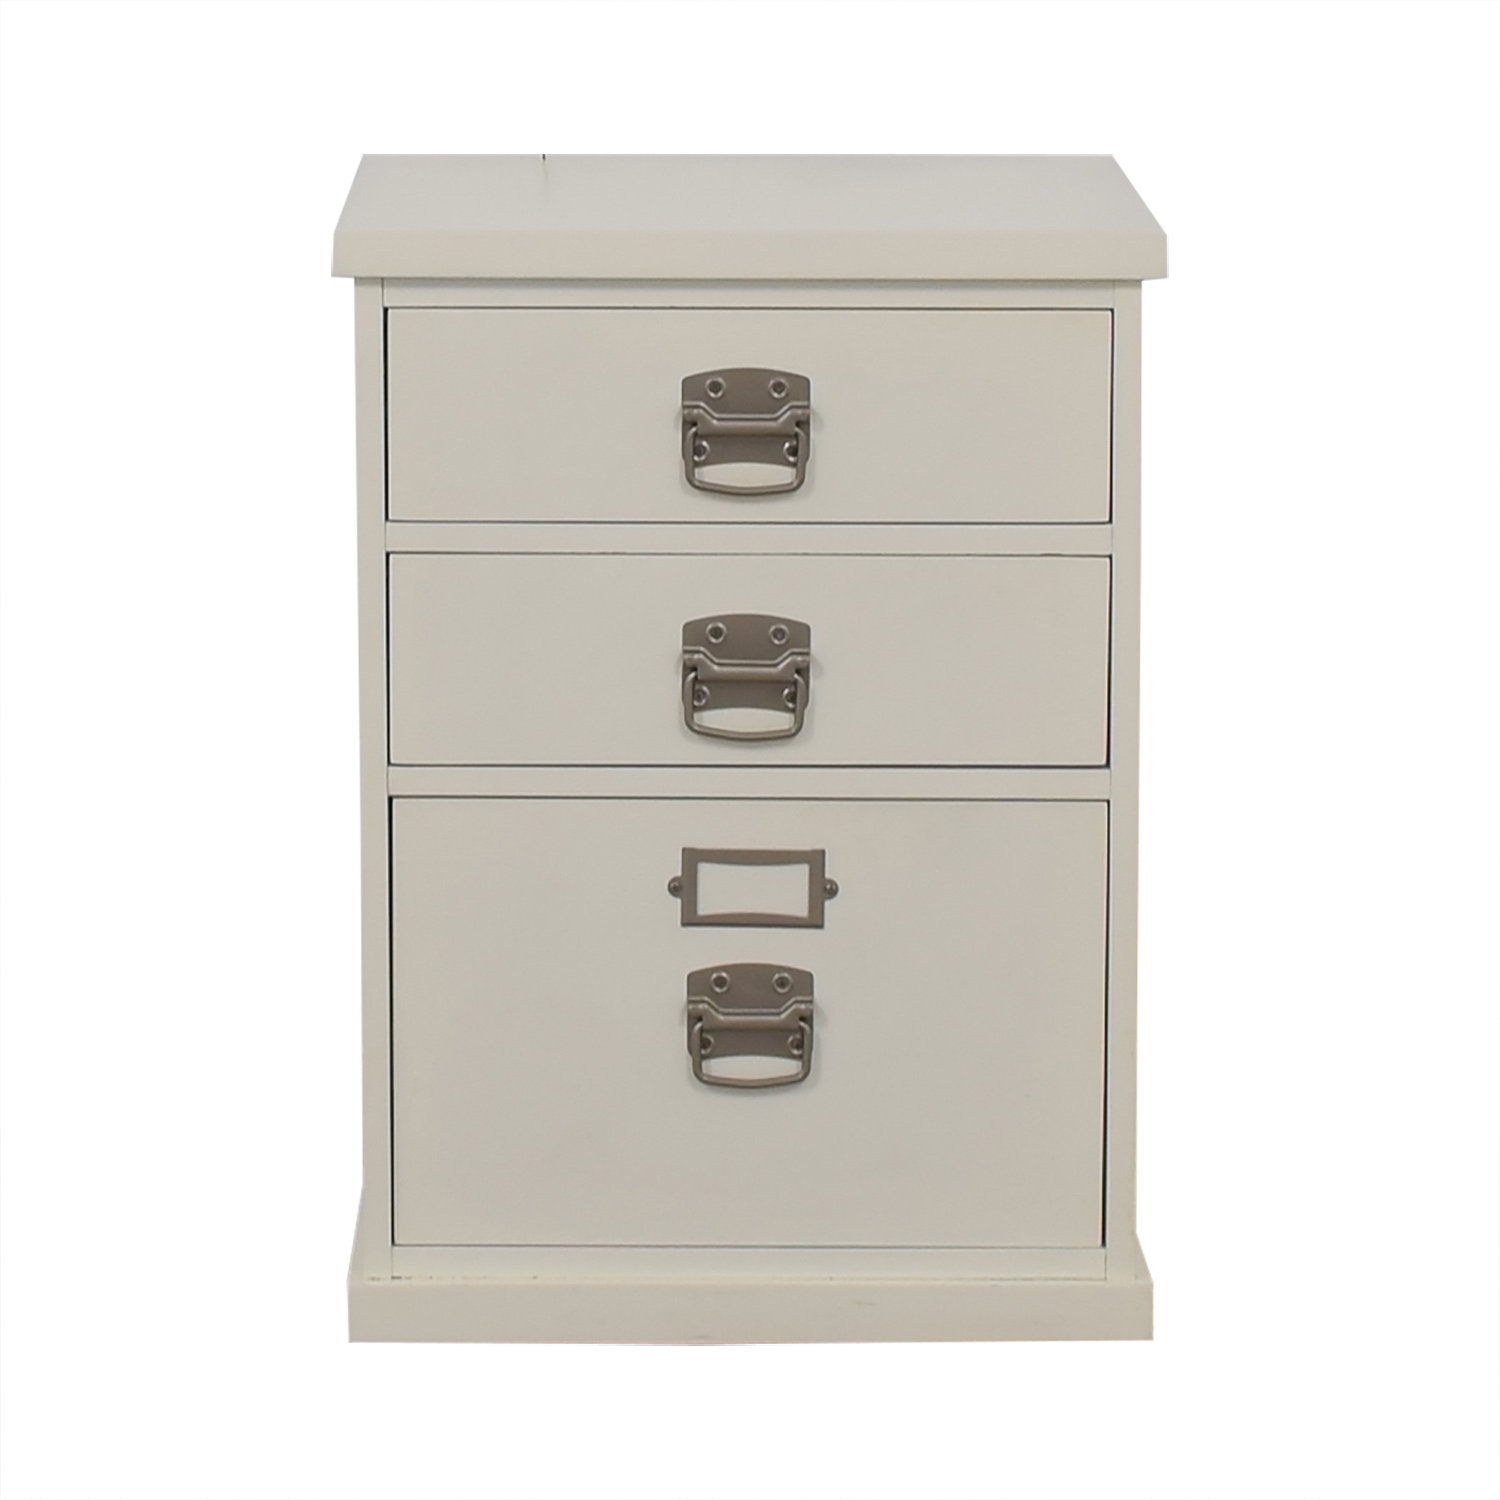 shop Pottery Barn Bedford White Three-Drawer File Cabinet Pottery Barn Filing & Bins